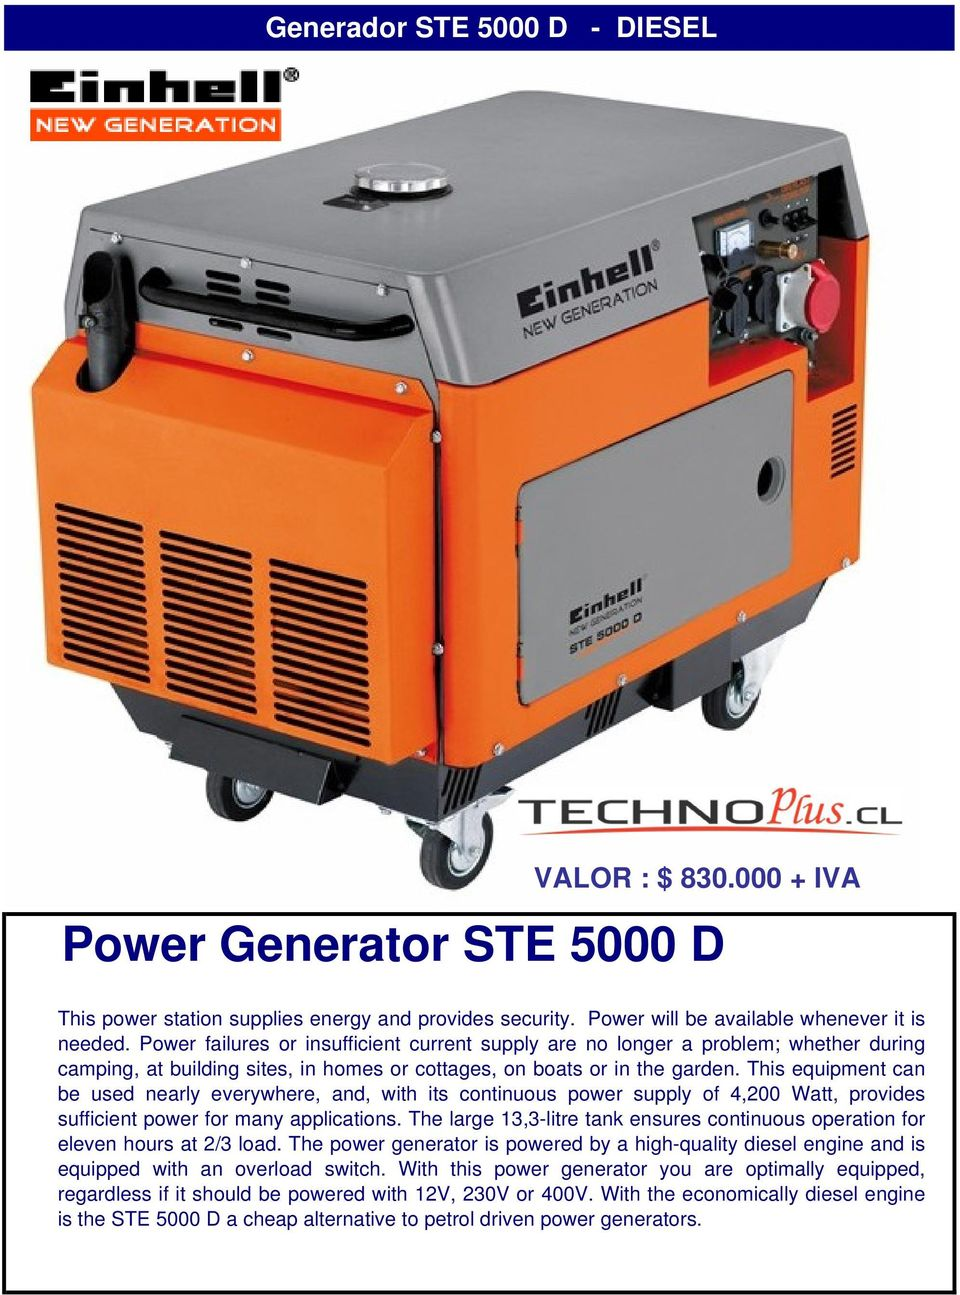 This equipment can be used nearly everywhere, and, with its continuous power supply of 4,200 Watt, provides sufficient power for many applications.